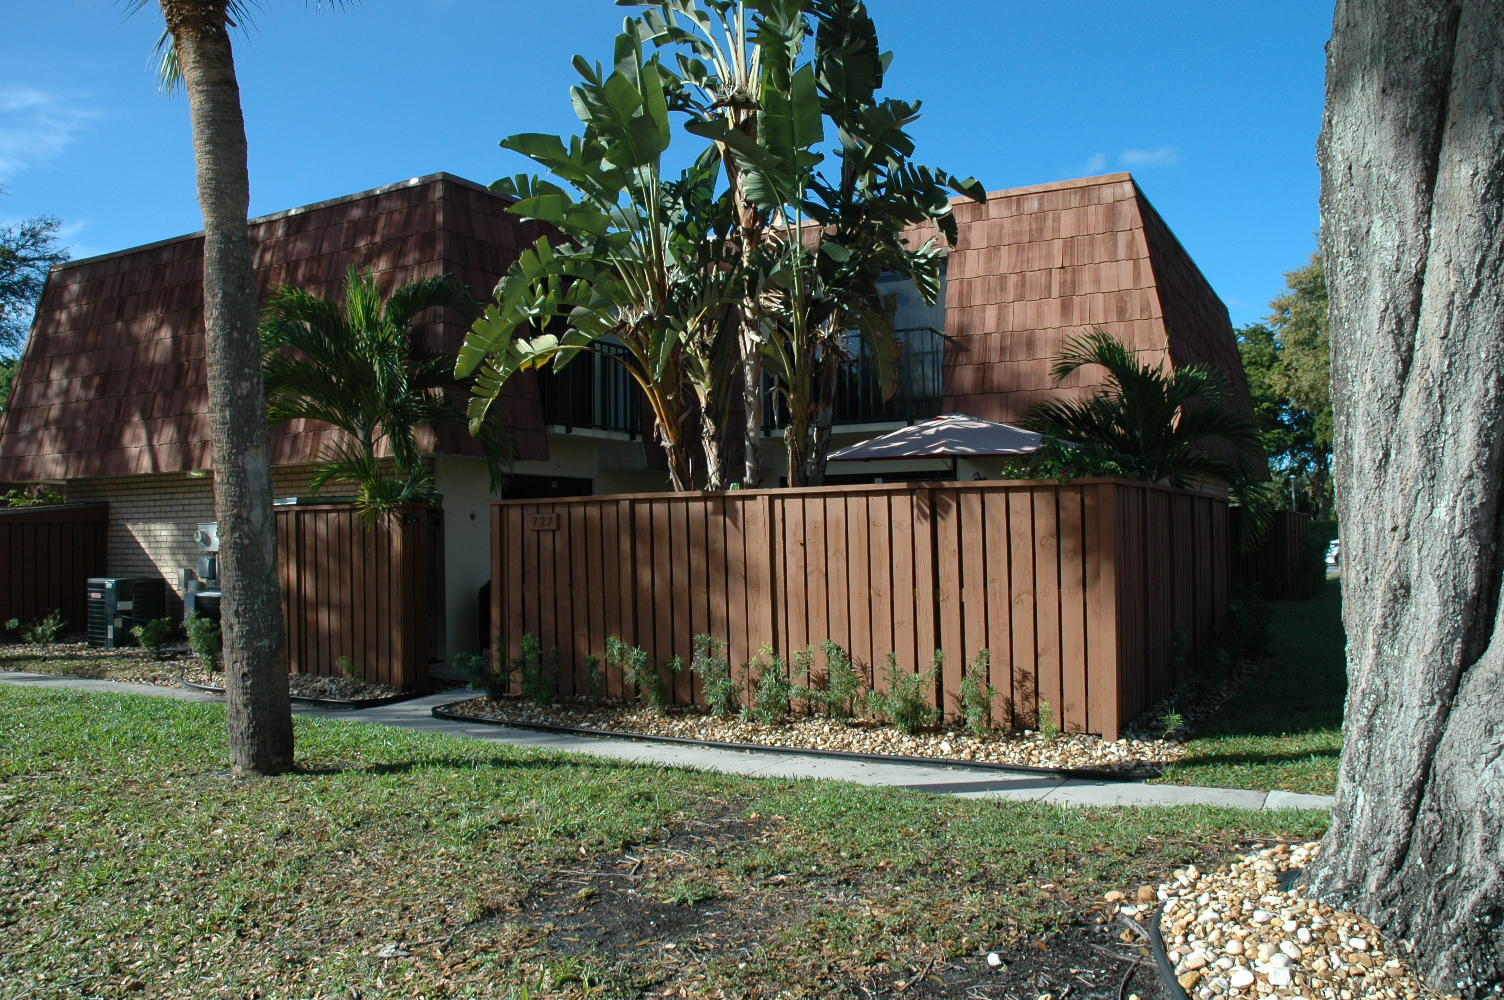 Home for sale in Sandalwood Chalet Boynton Beach Florida